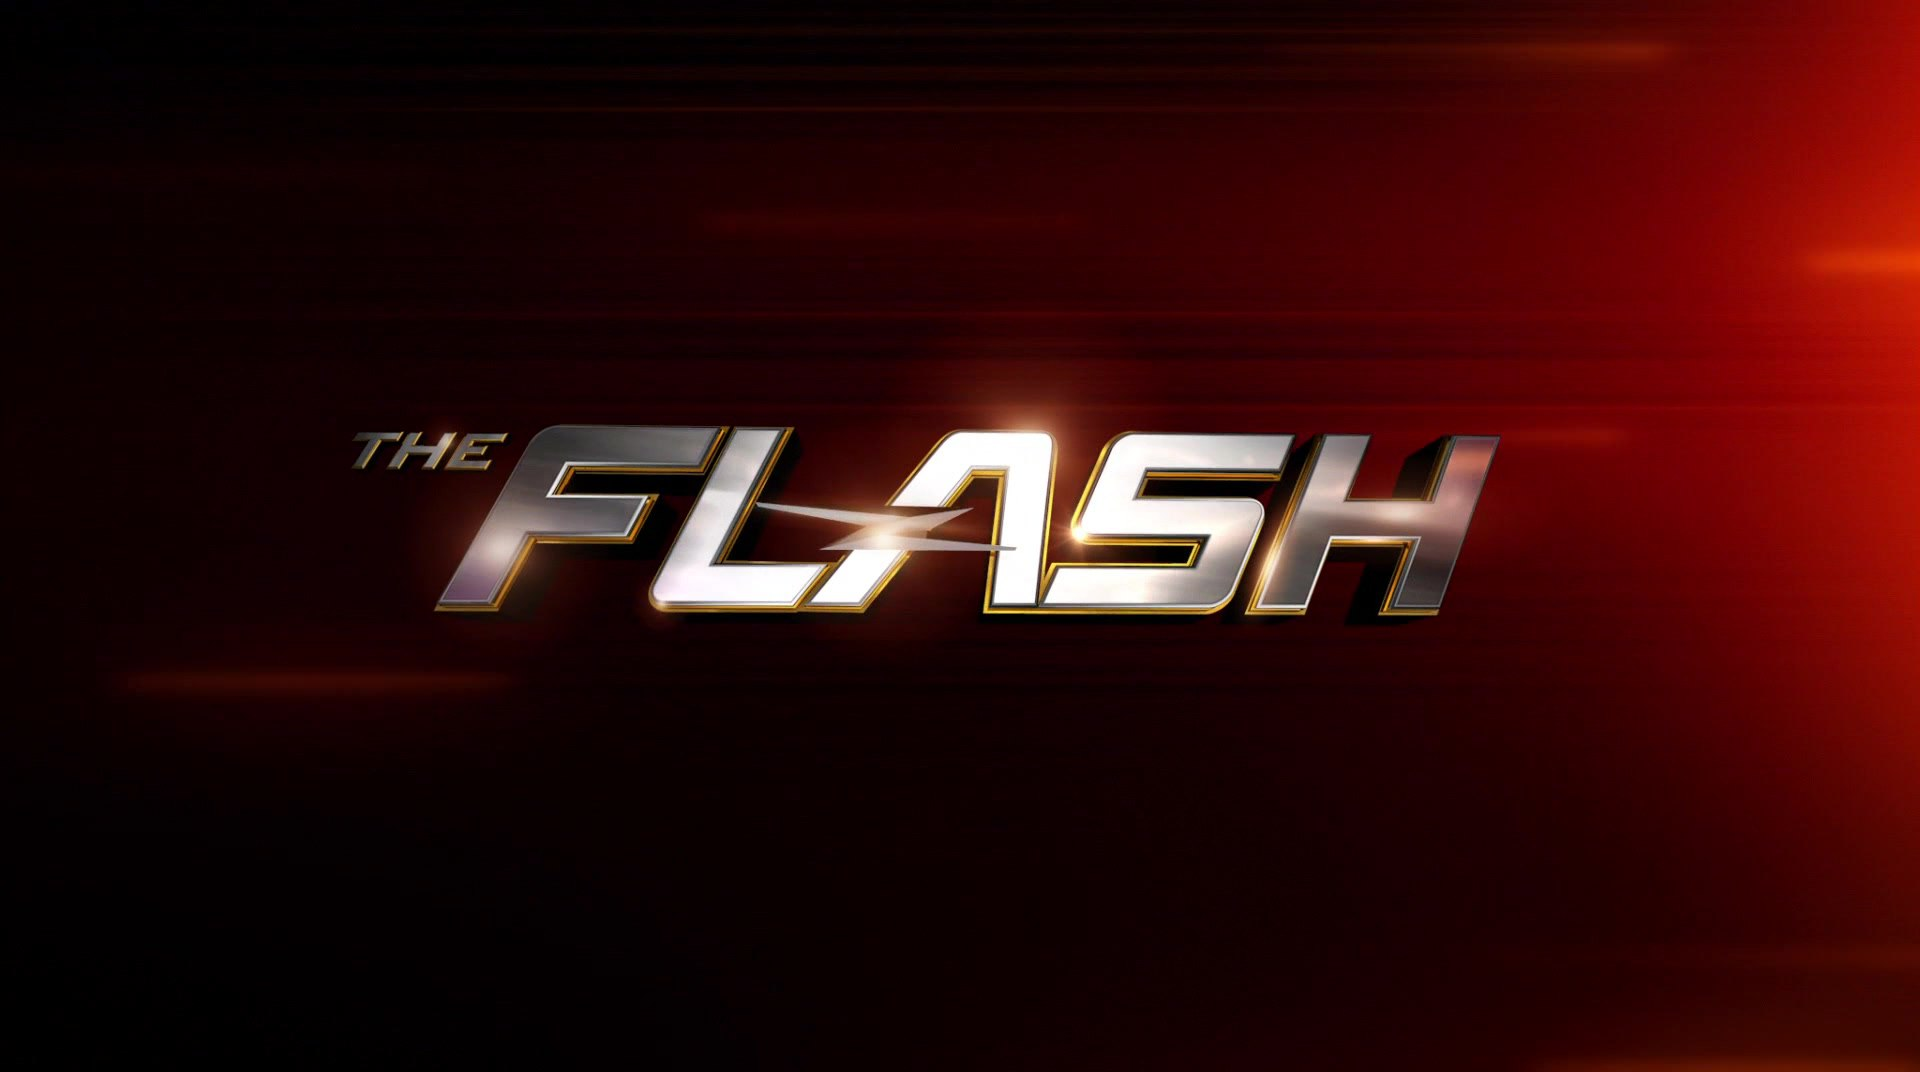 The Flash (2014 TV Series) Episode: Subject 9